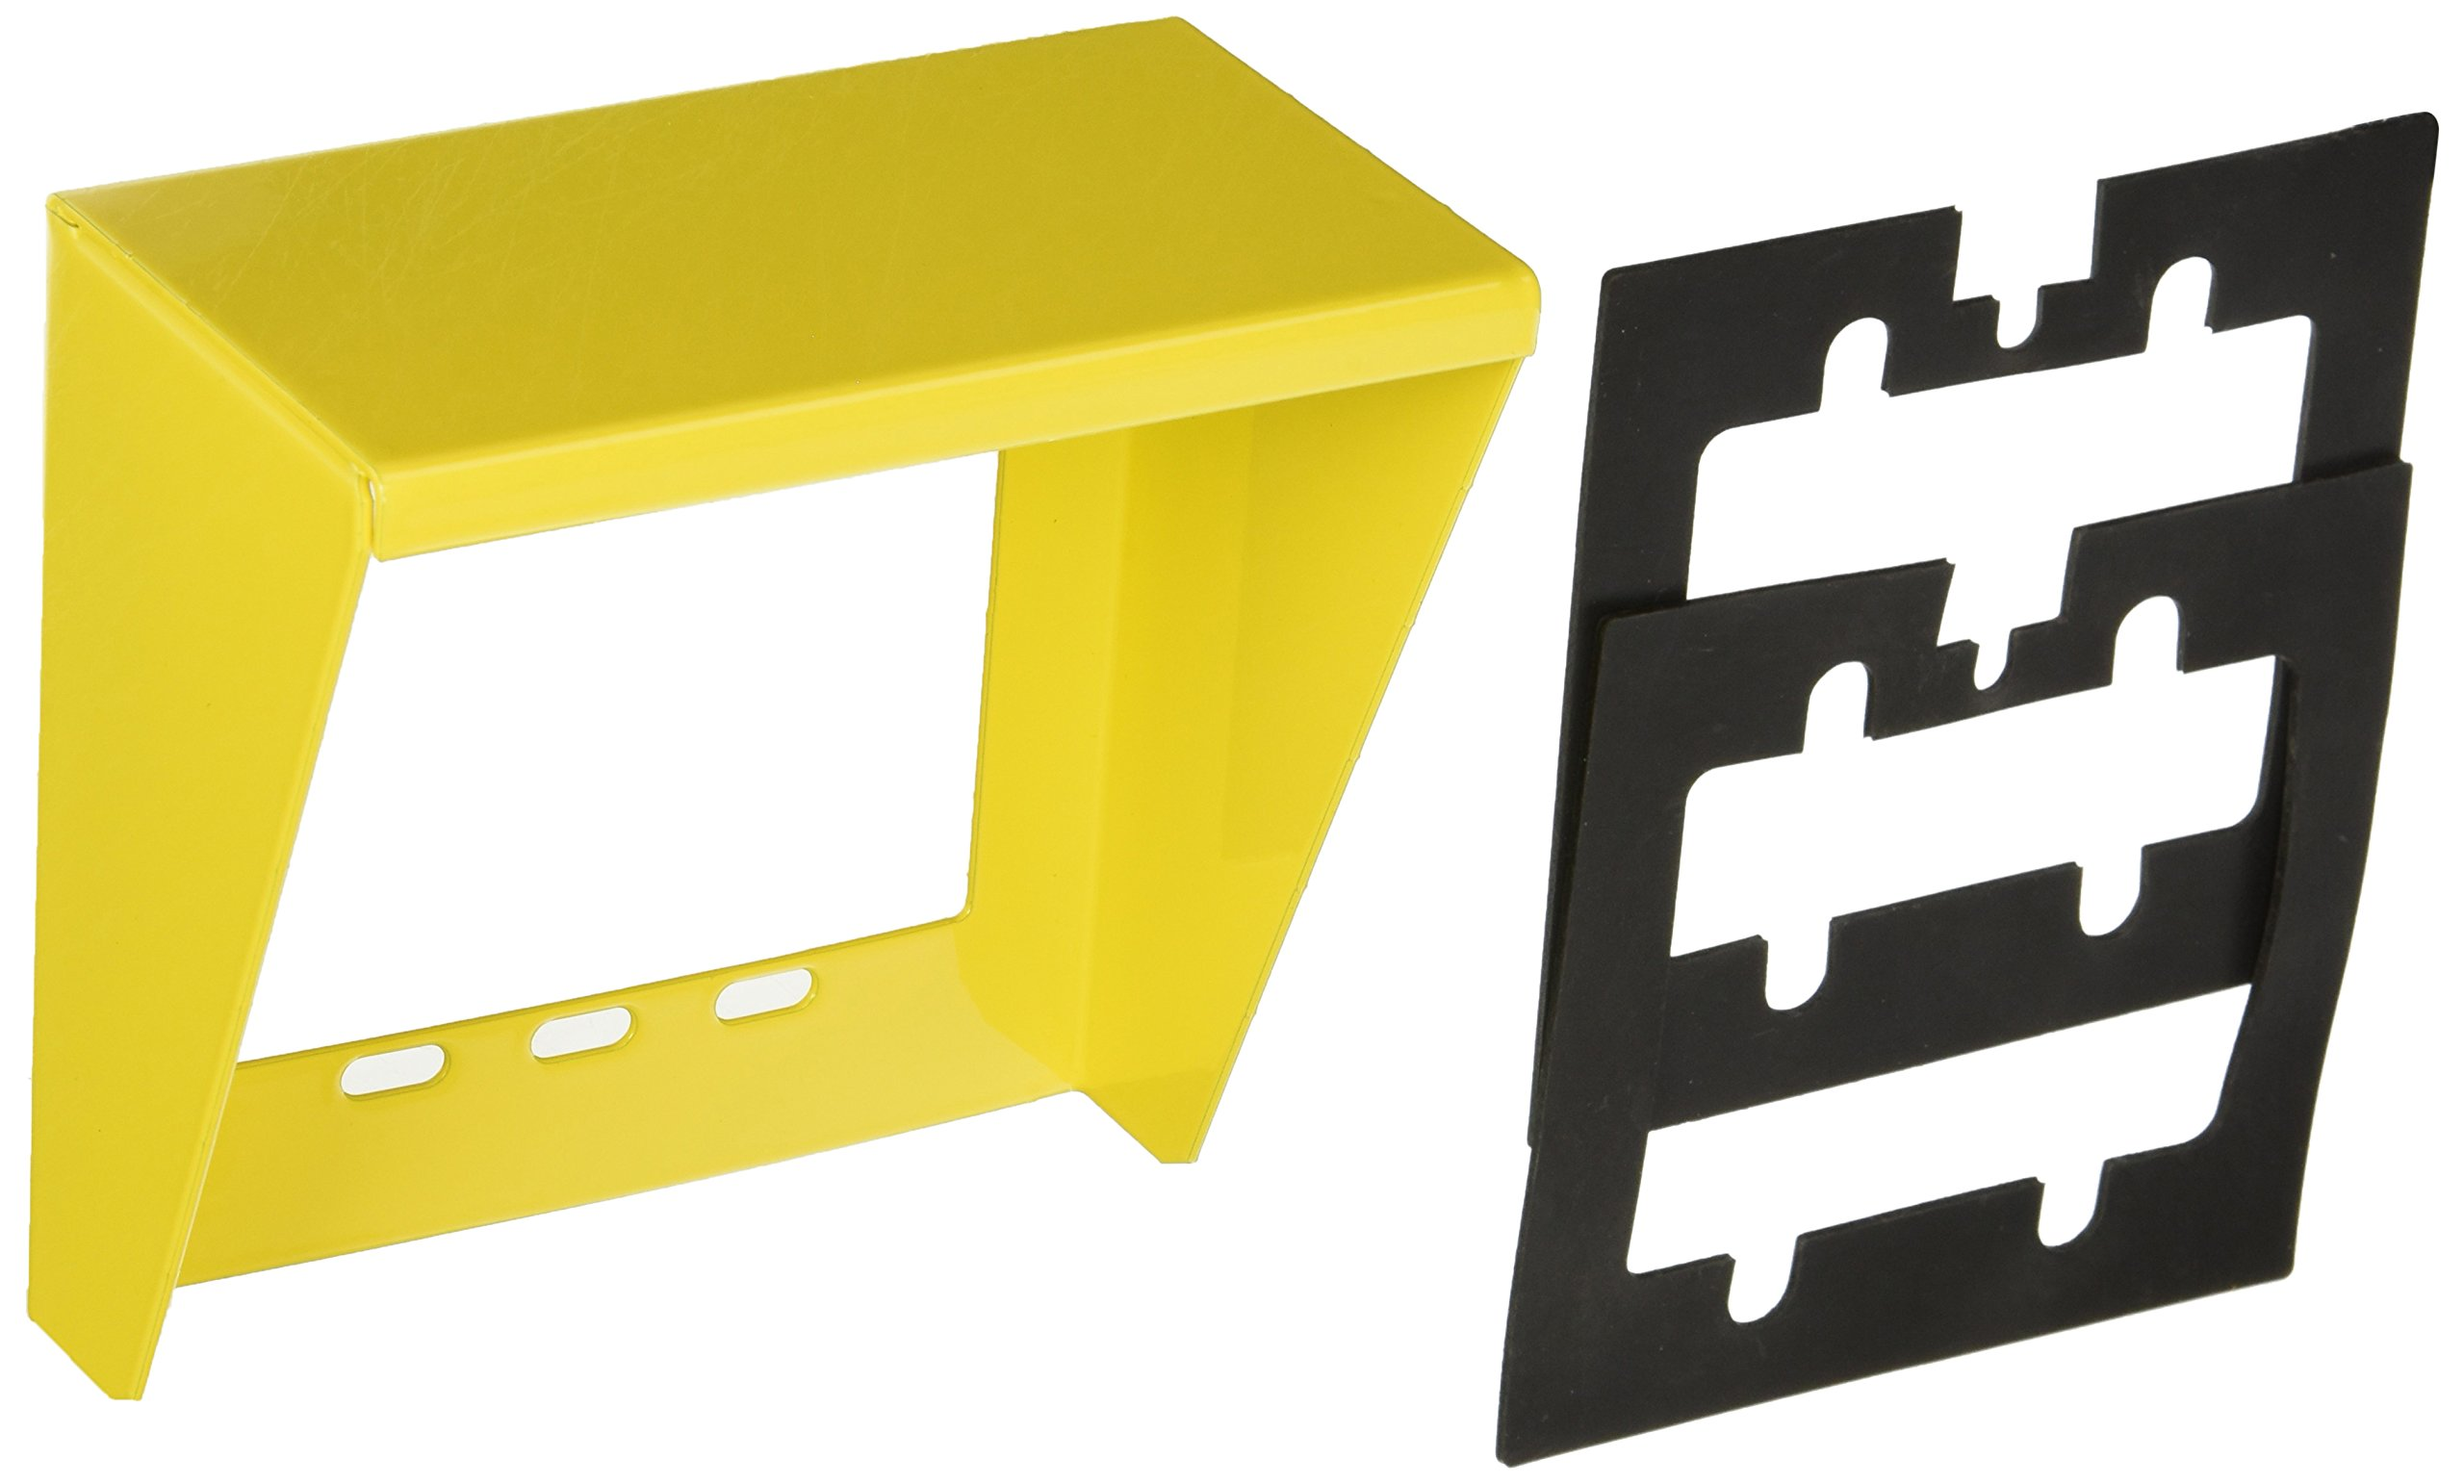 Valcom V-9910-Yel Doorbox Weather Guard for use with Valcom Doorplate Speakers, Yellow